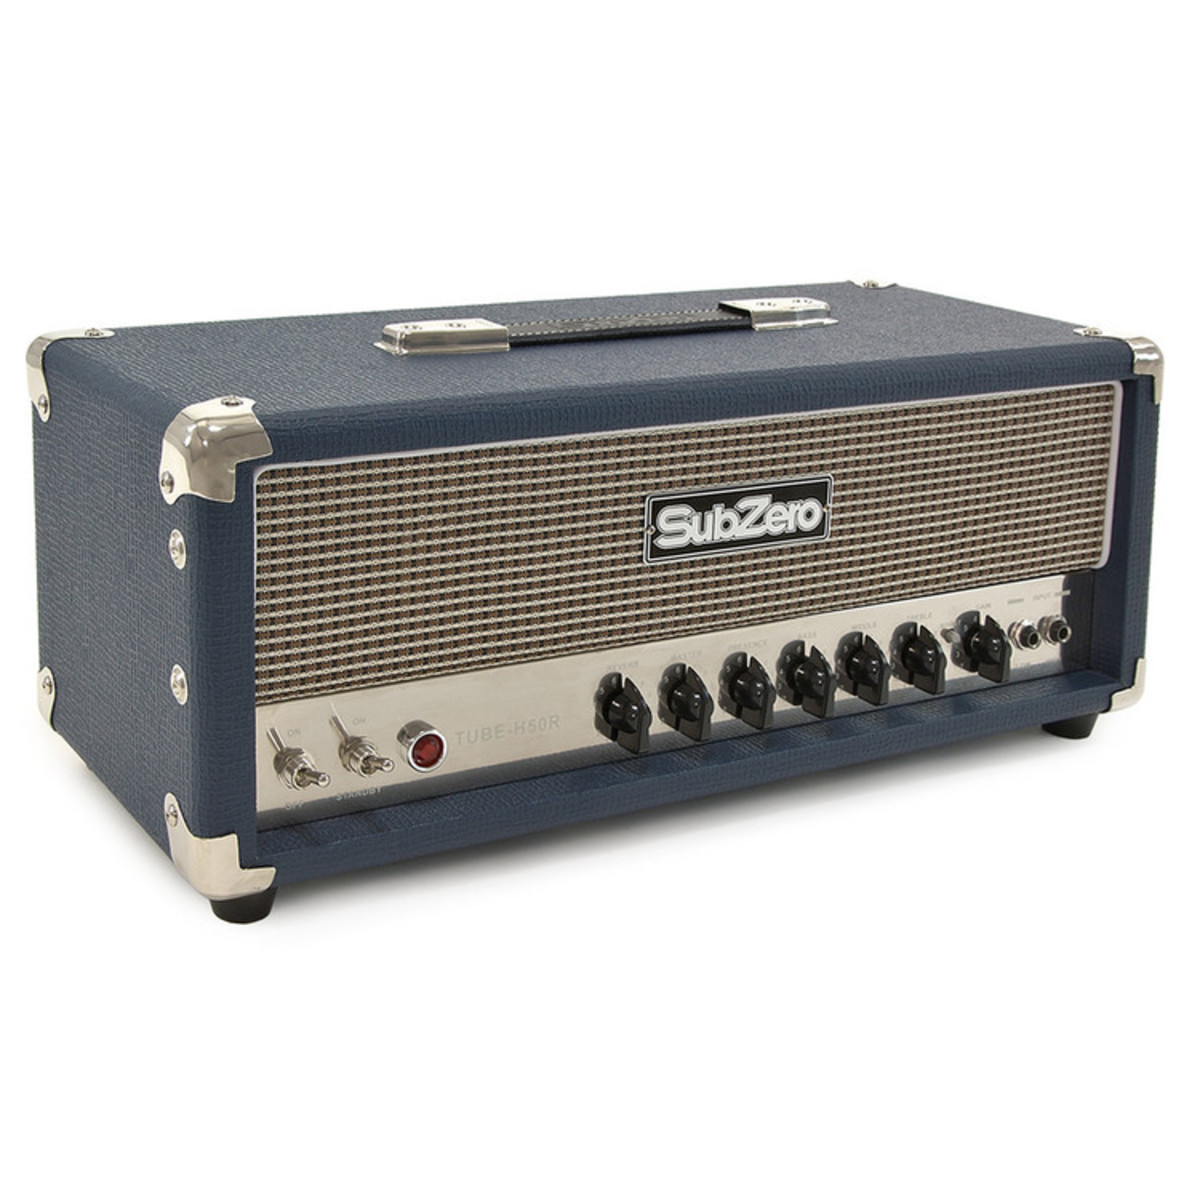 subzero tube h50r 50w valve guitar amp head nearly new at gear4music. Black Bedroom Furniture Sets. Home Design Ideas